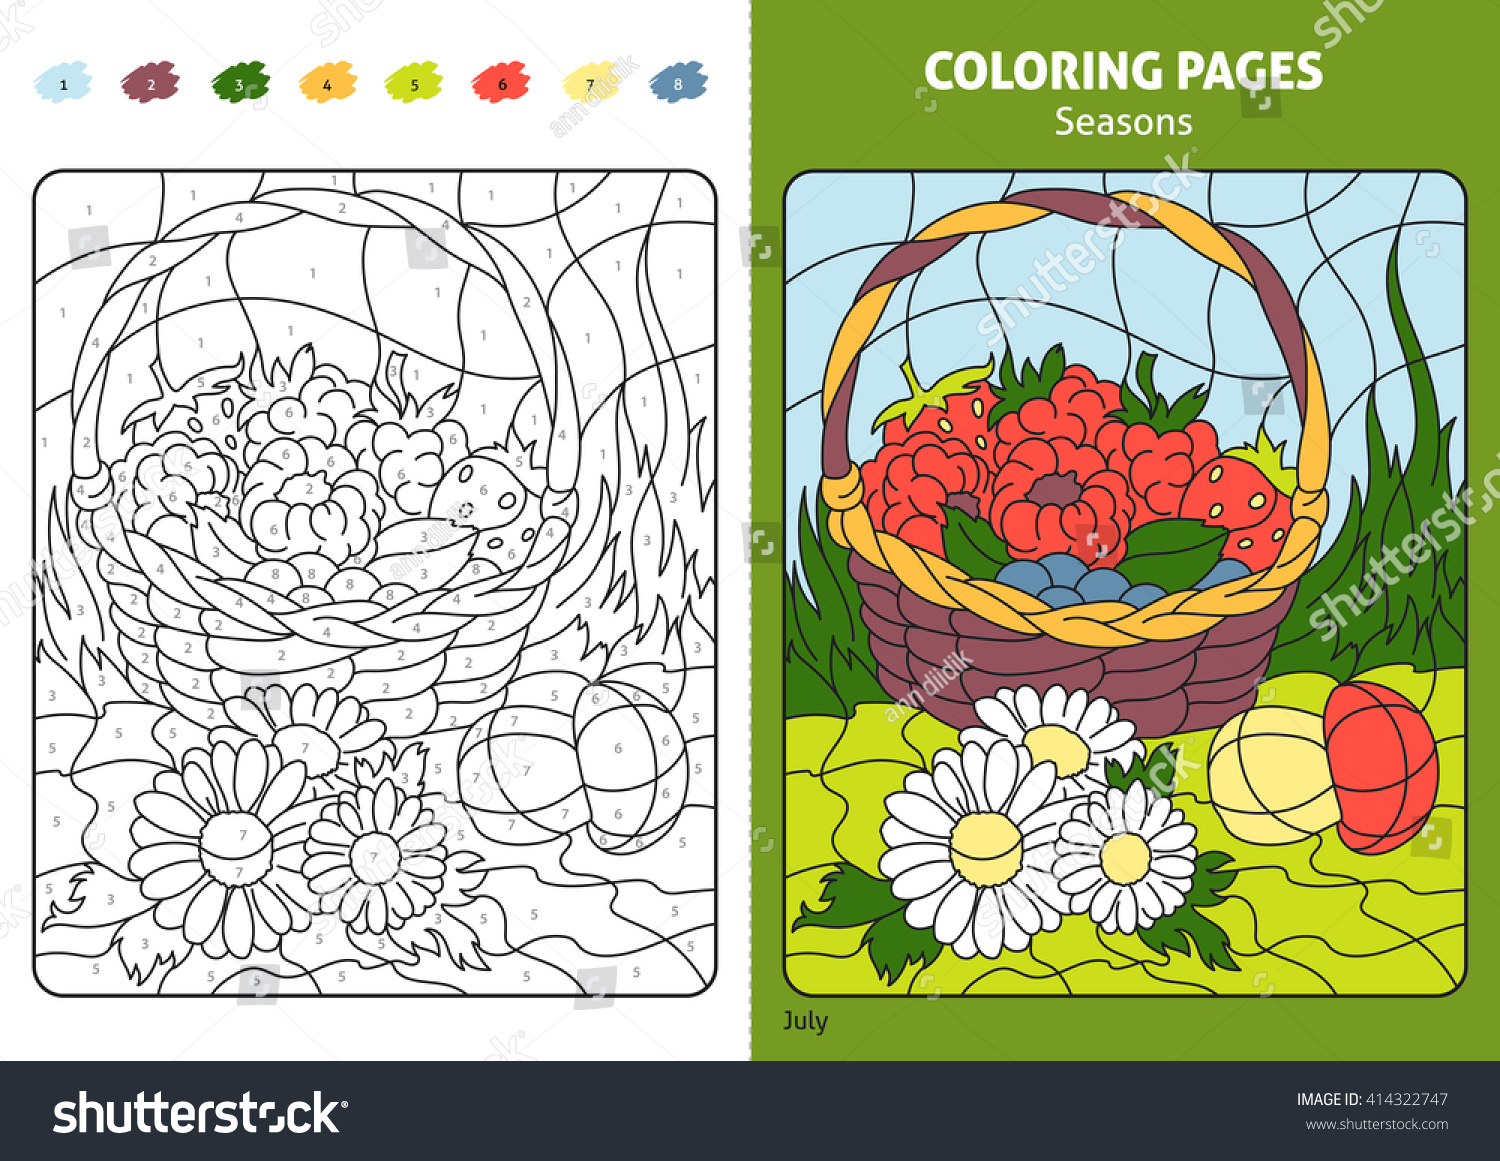 Seasons Coloring Page Kids July Month Stock Vector HD (Royalty Free ...